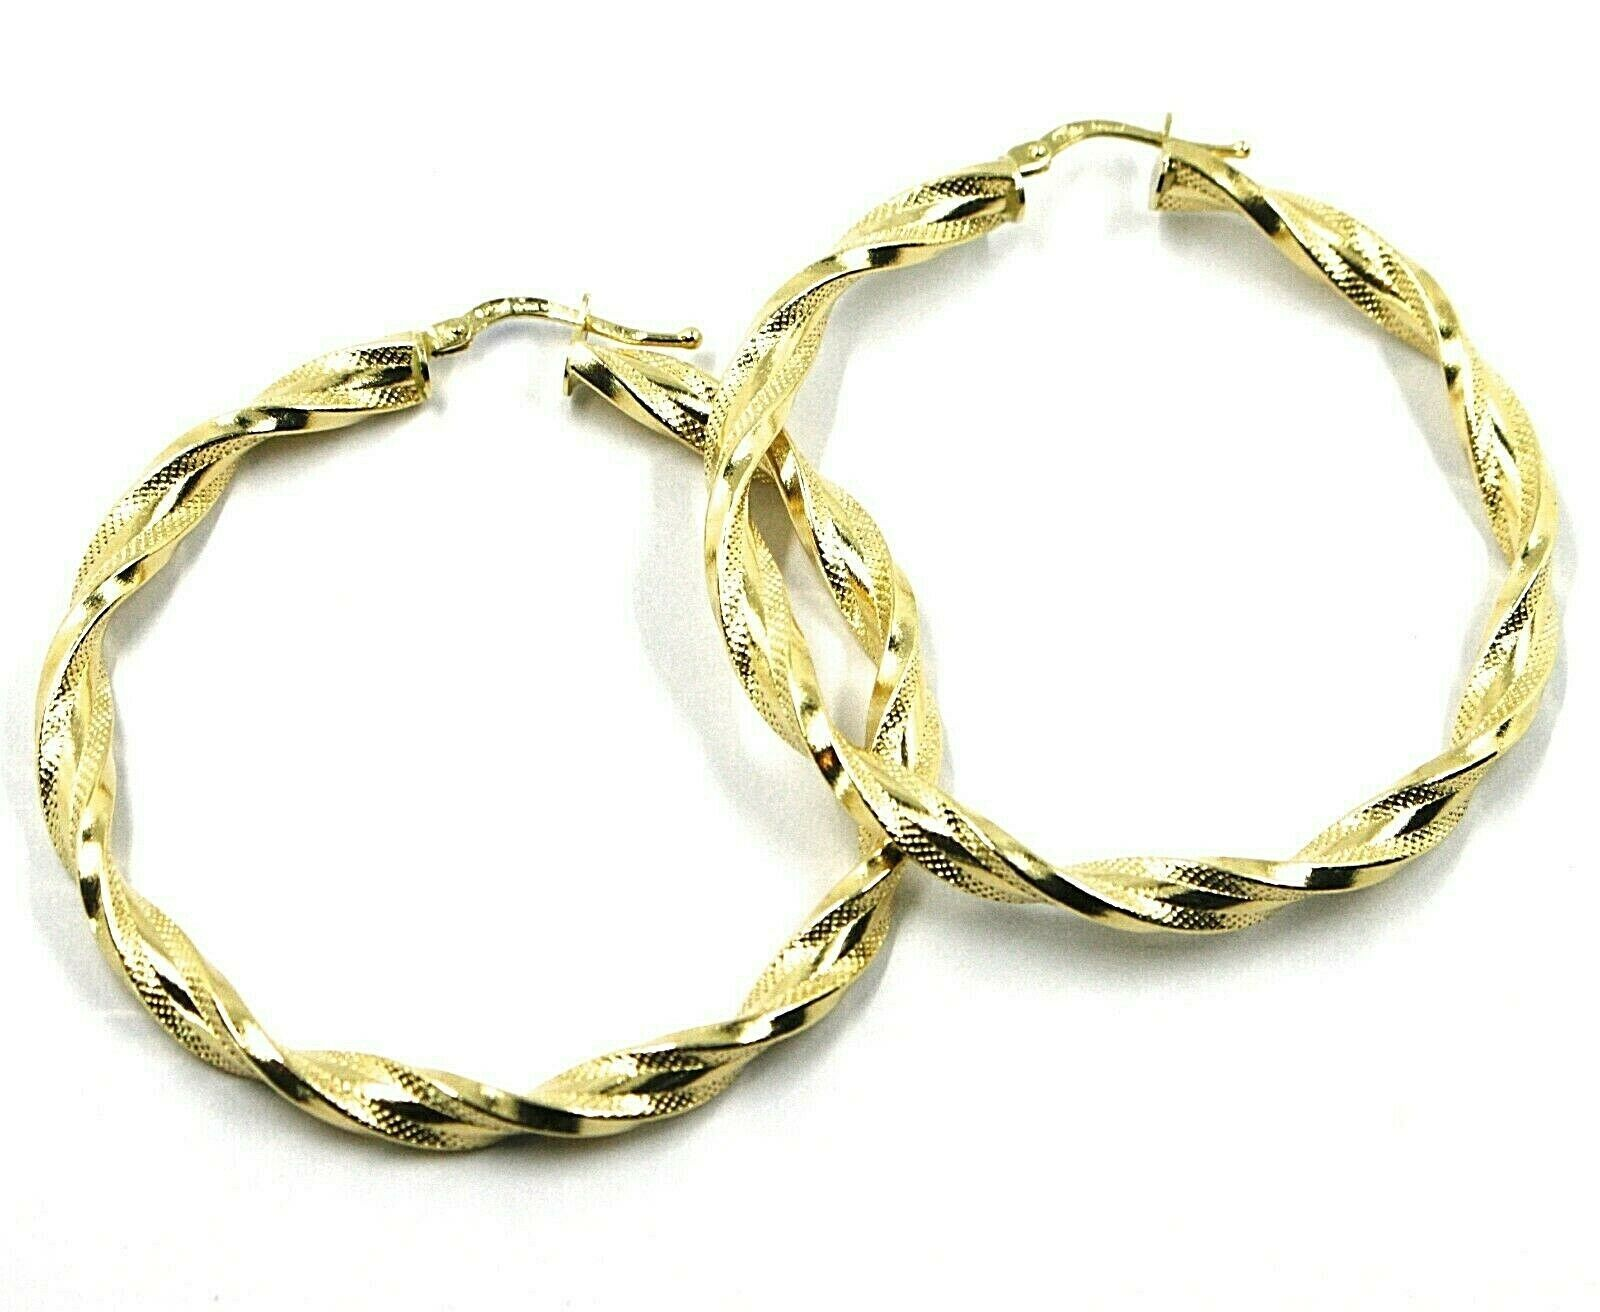 18K YELLOW GOLD BIG HOOPS EARRINGS DIAMETER 50mm TUBE 5mm TWISTED SATIN POINTED